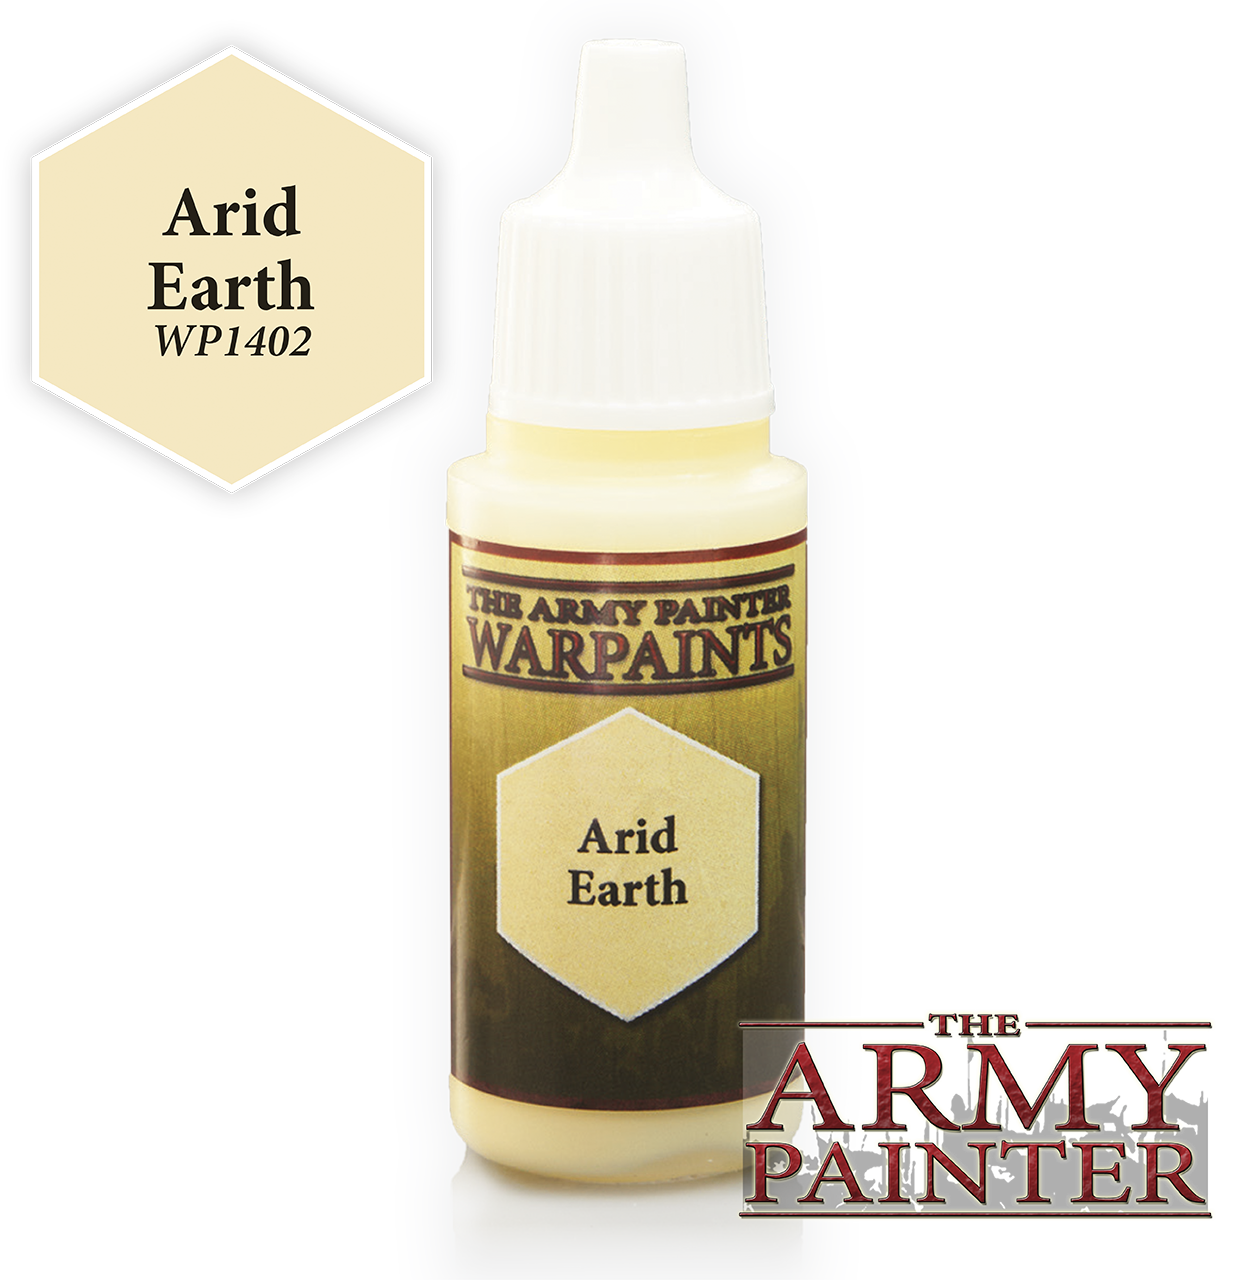 Arid Earth - Army Painter Warpaints